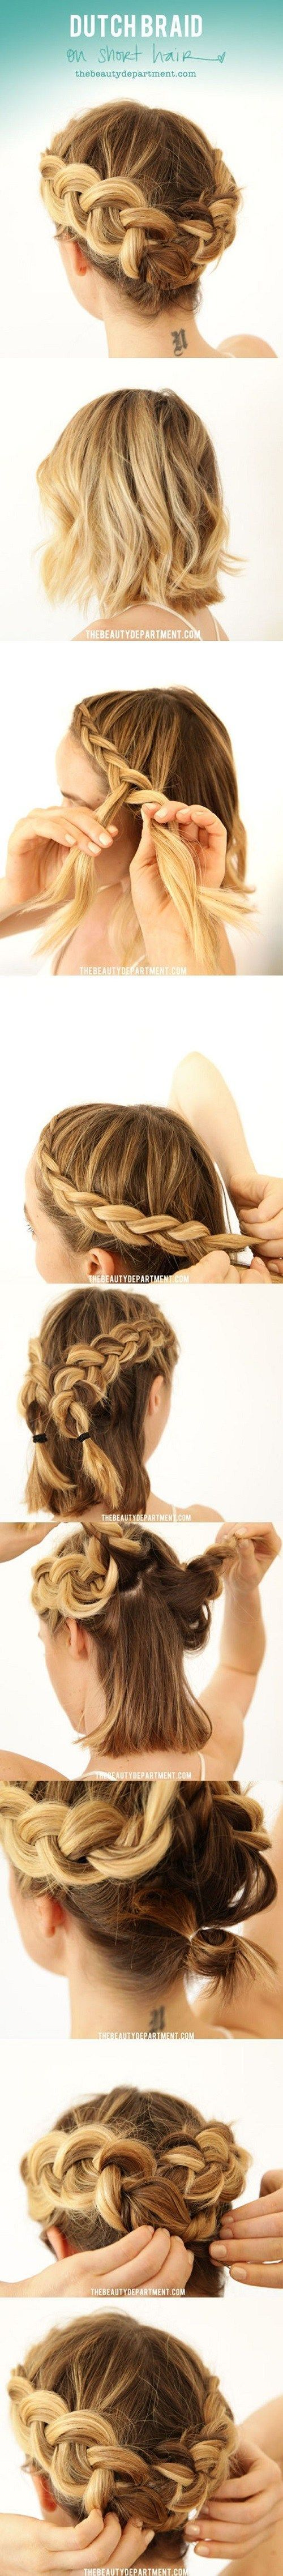 cool 20 Hair Tutorials You Can Totally DIY - The Right Hairstyles for You